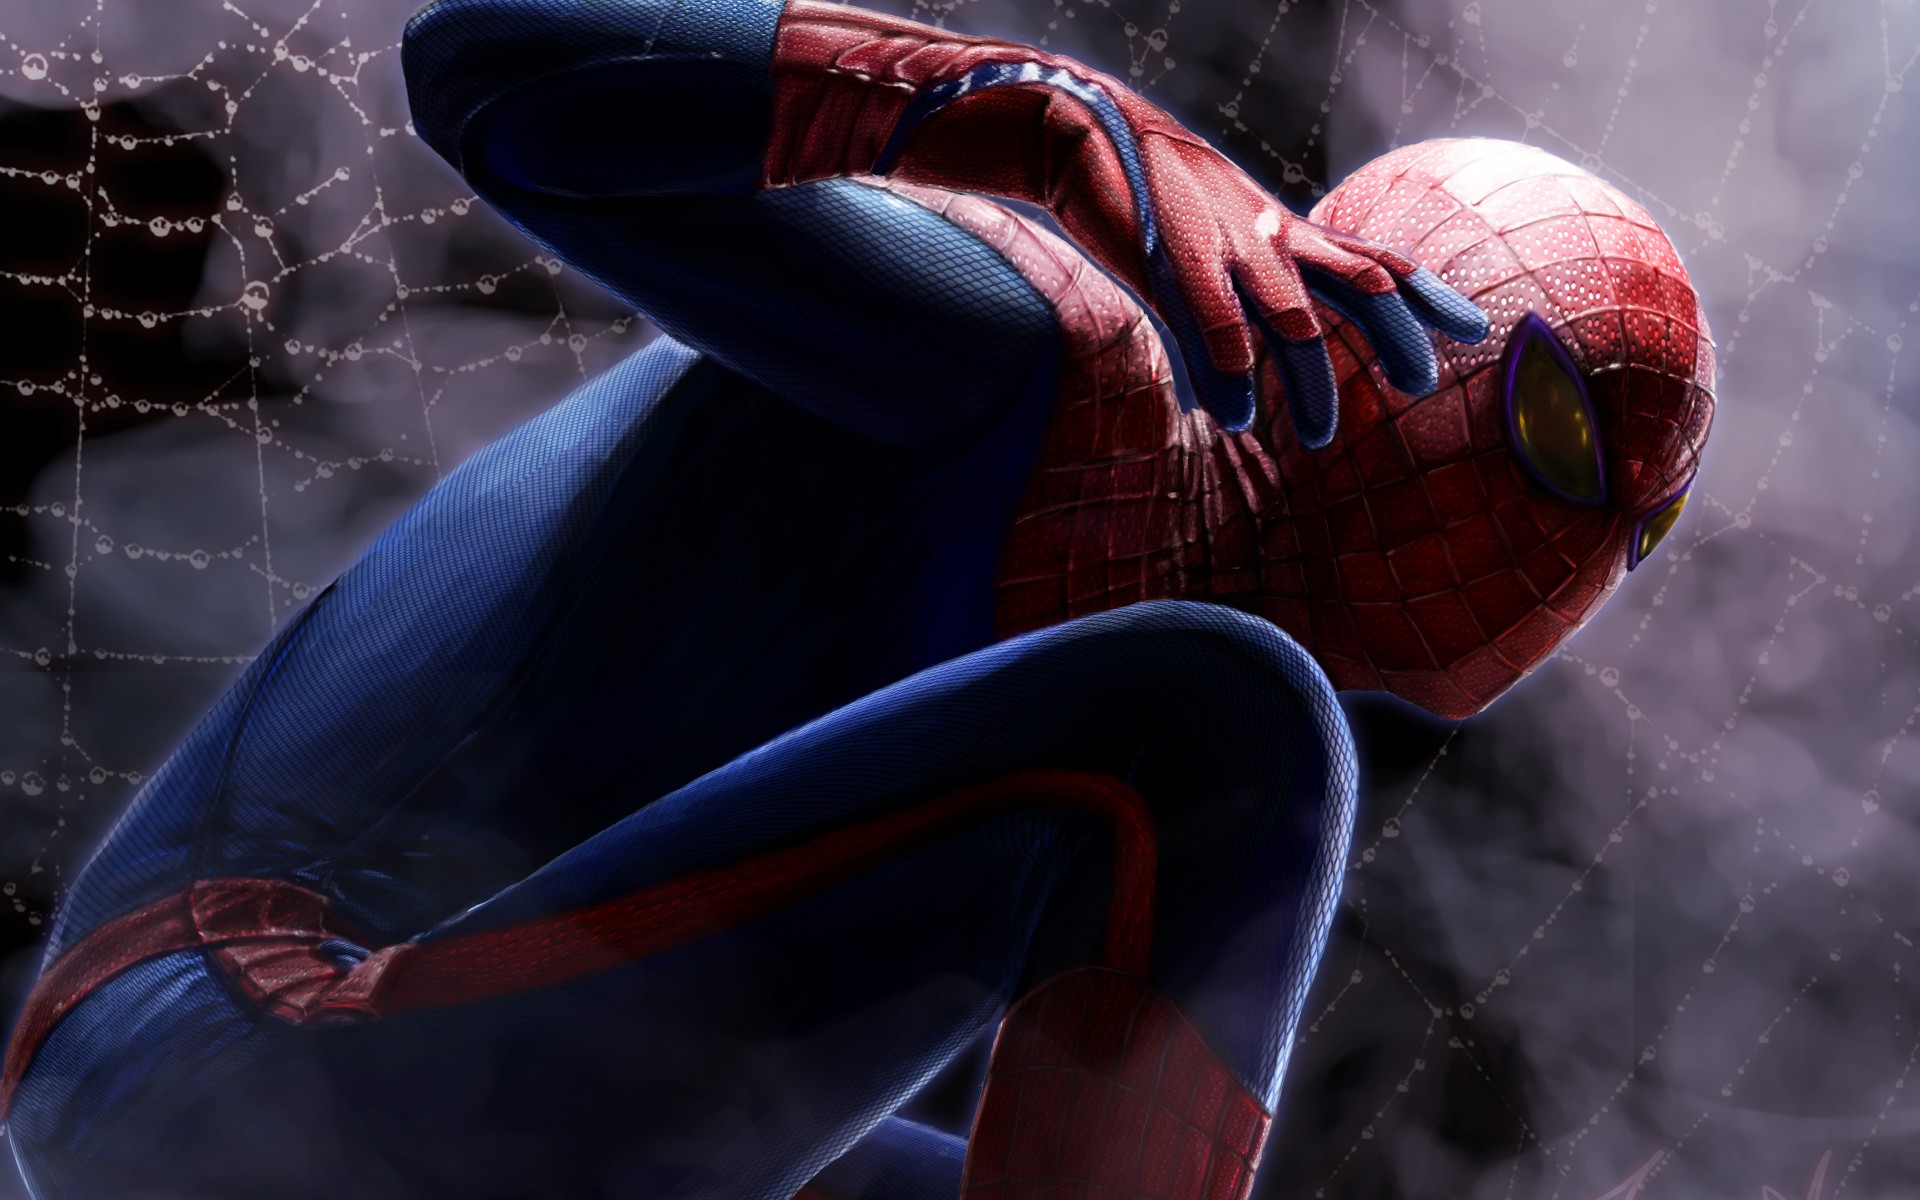 Amazing Wallpaper High Resolution Spiderman - spider-man-backgrounds_114447  Graphic_23787.jpg